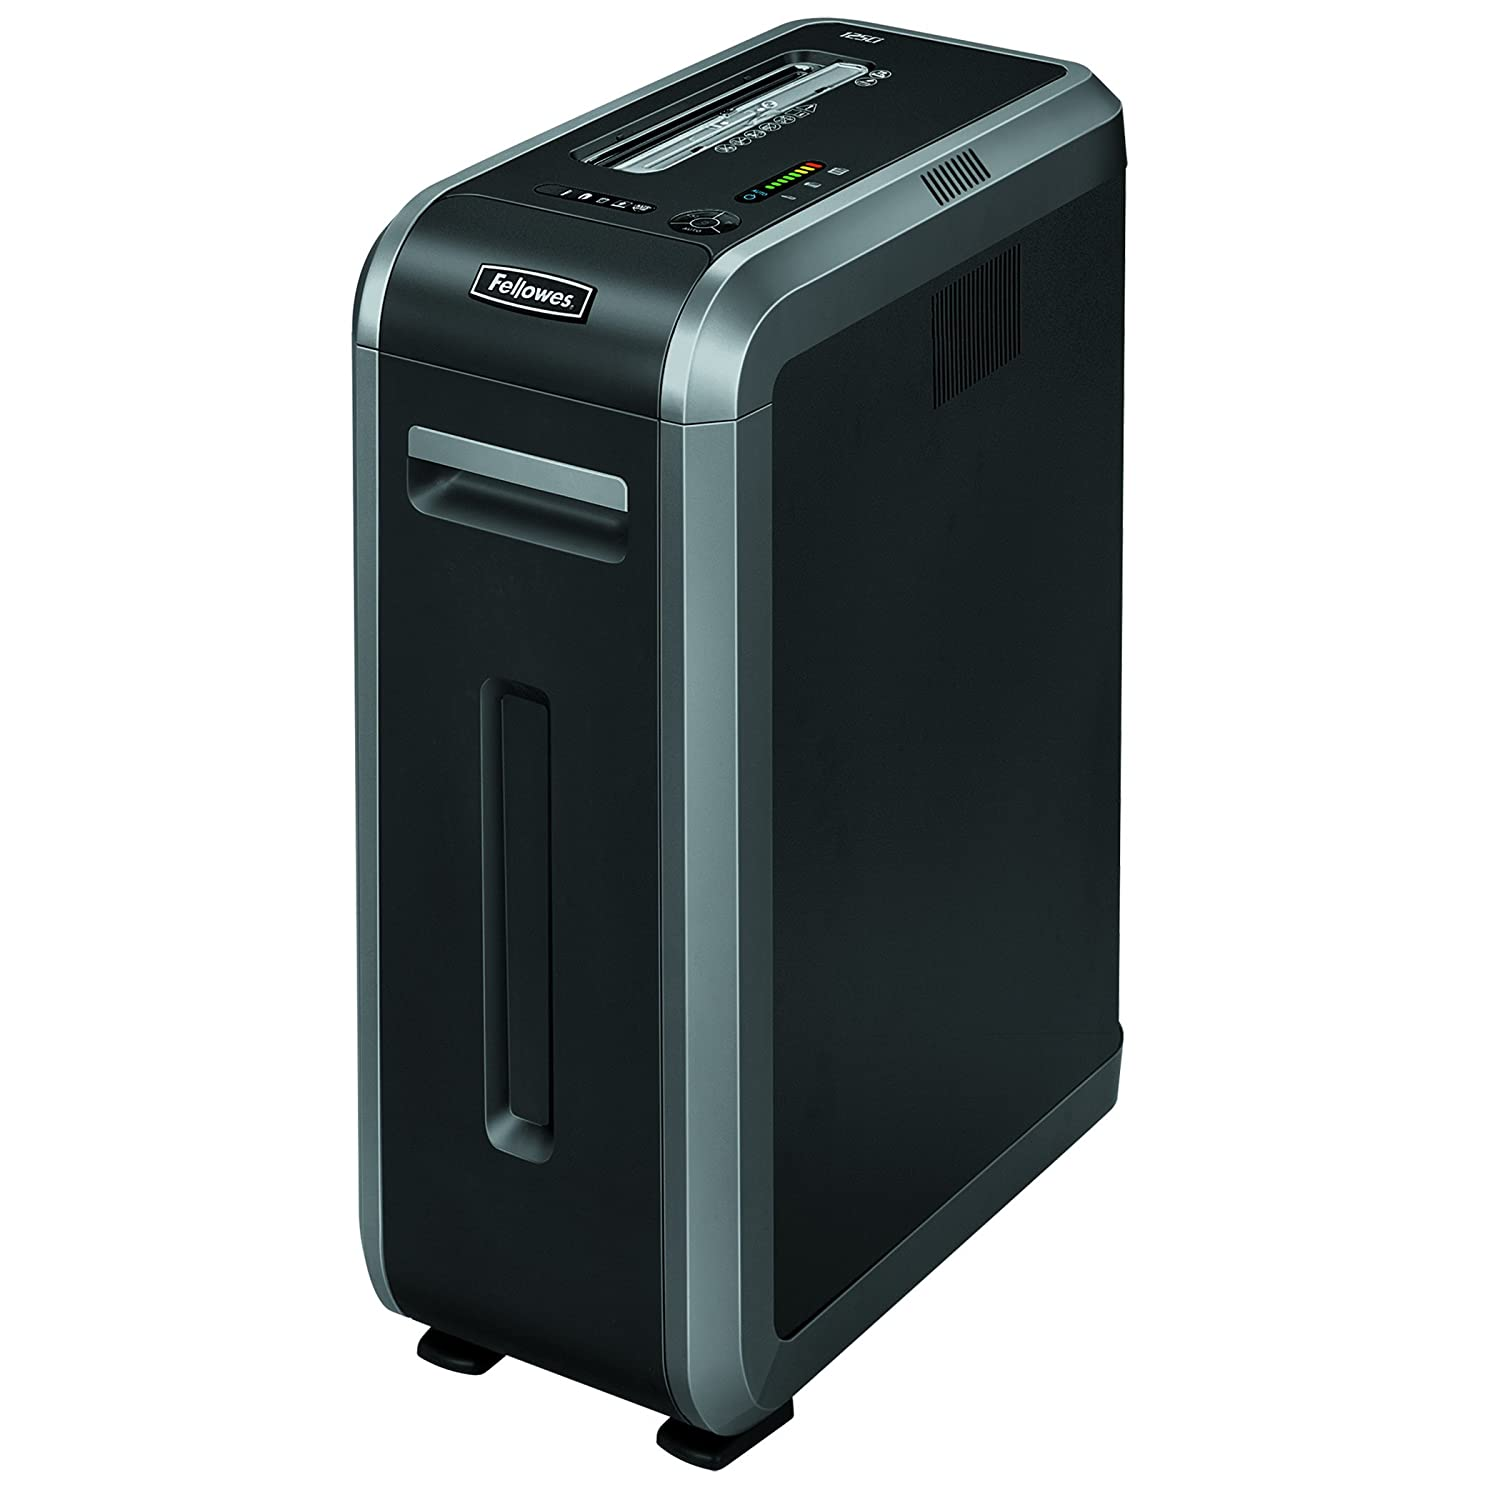 Fellowes Powershred 125Ci 100% Jam Proof 20 -Sheet Cross-Cut Commercial Grade Paper Shredder